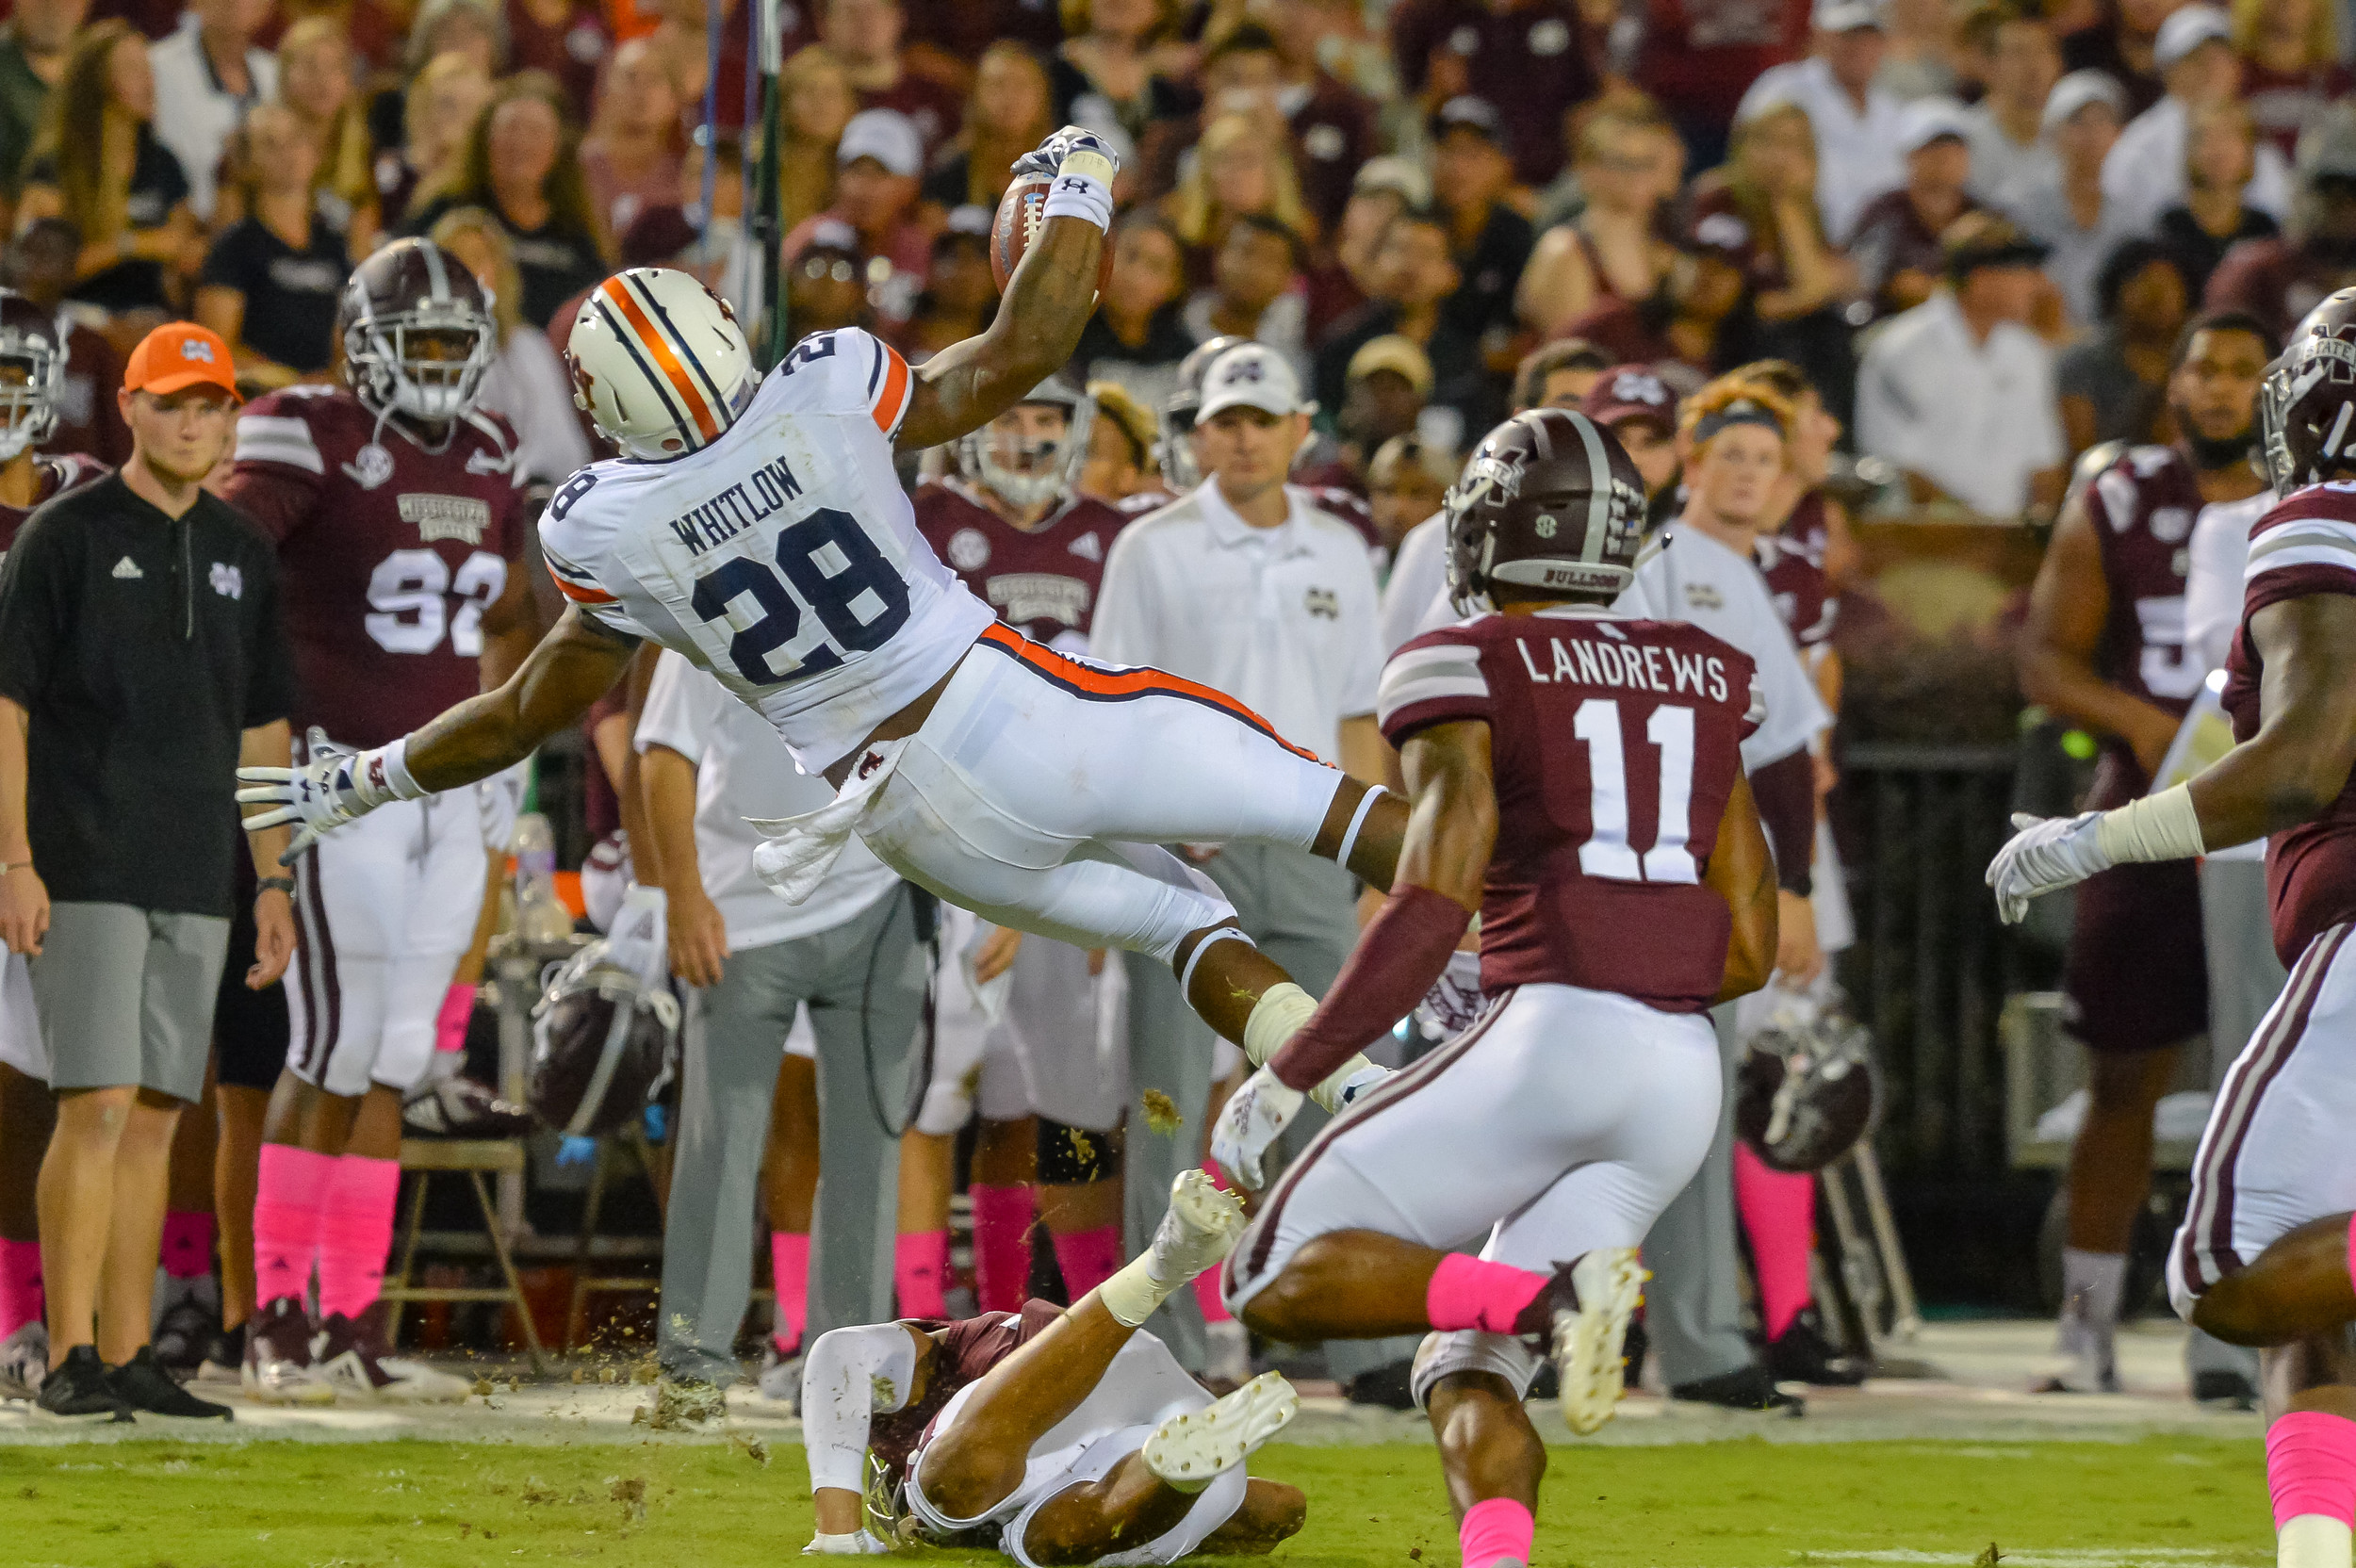 Auburn Tigers running back JaTarvious Whitlow (28) is upended during the first half of Saturday's game, at Davis Wade Stadium in Starkville, MS. Daily Mountain Eagle -  Jeff Johnsey